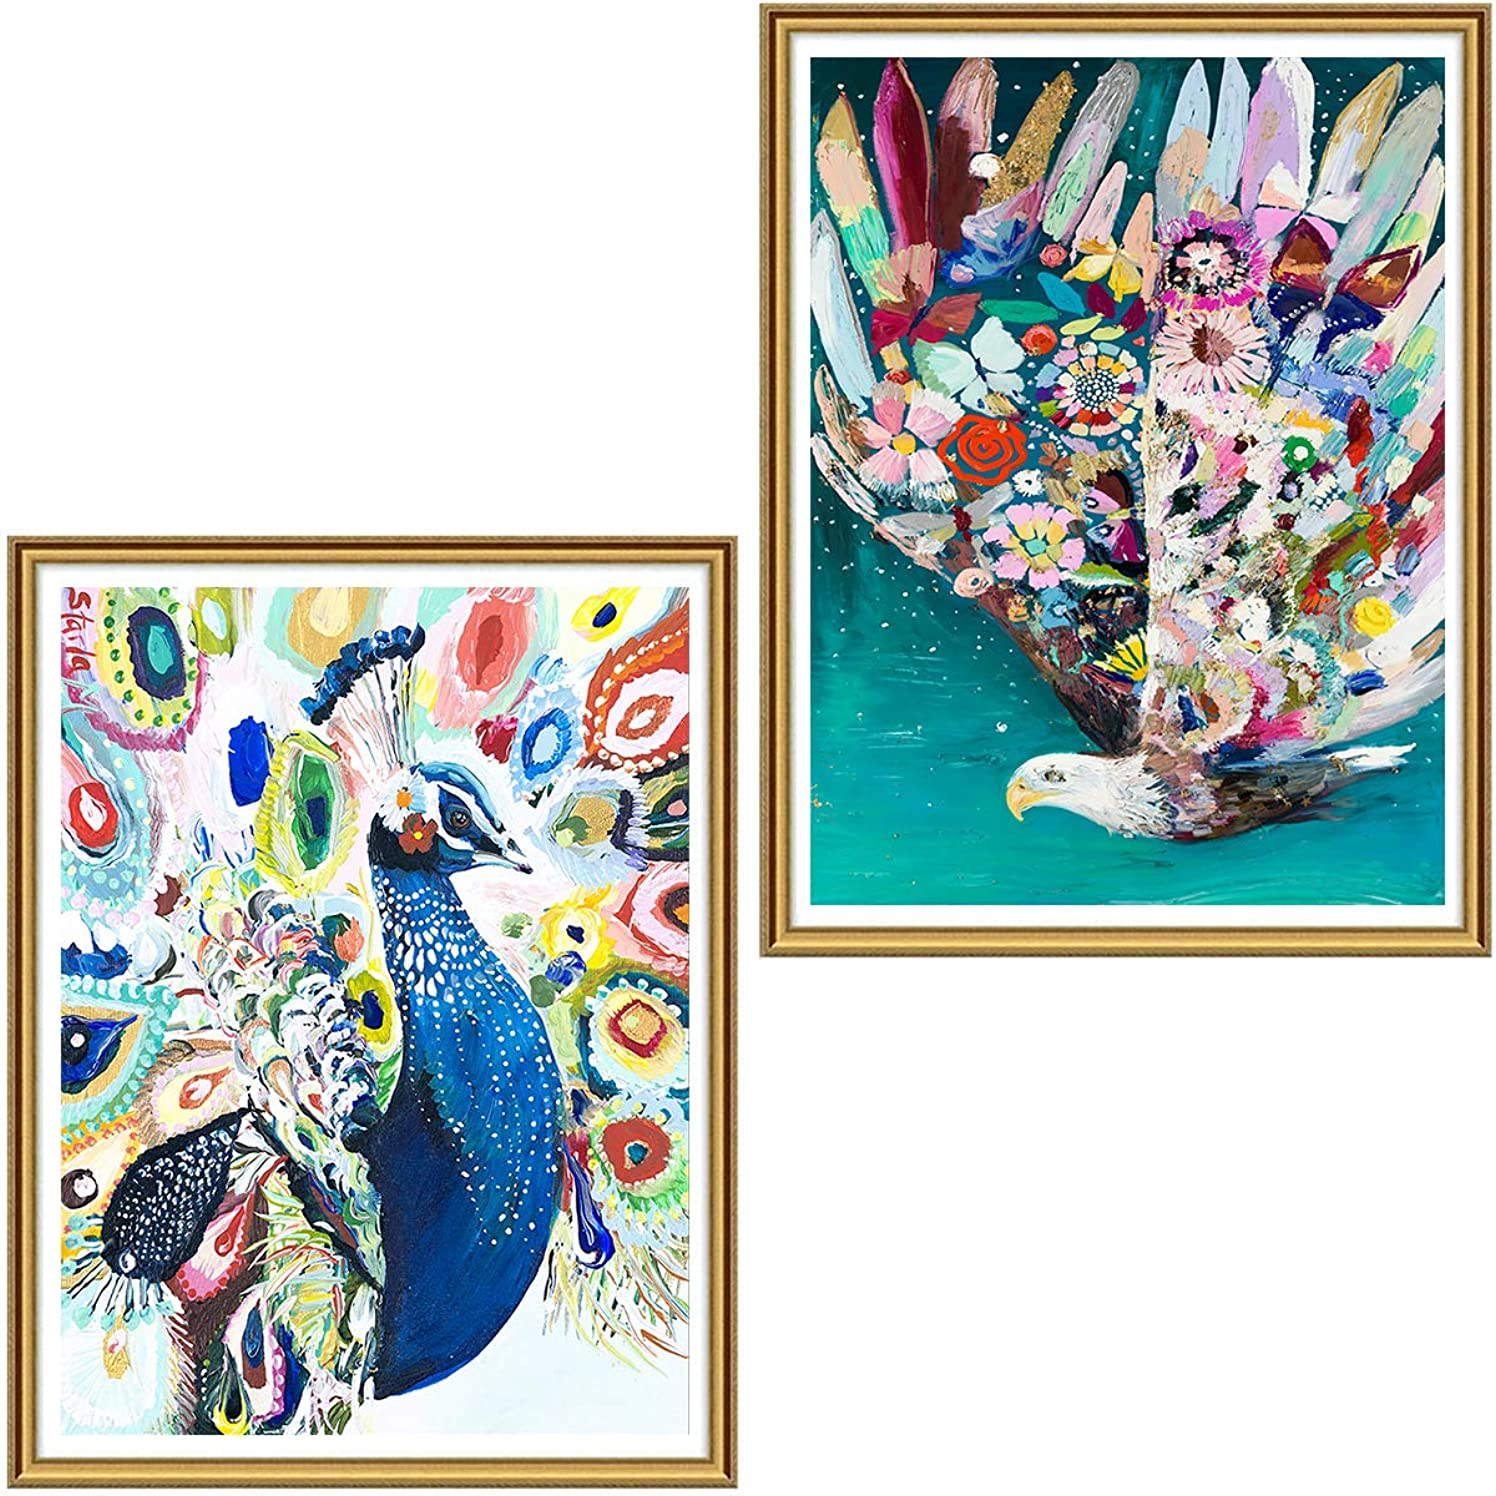 5D DIY Diamond Painting Art Peacock and Eagle for Adults Full Drill by Number Kits, Ginfonr 2 Pack Animal Paint with Diamonds Craft Embroidery Rhinestone Cross Stitch Wall Decor (12 x 16 inch)